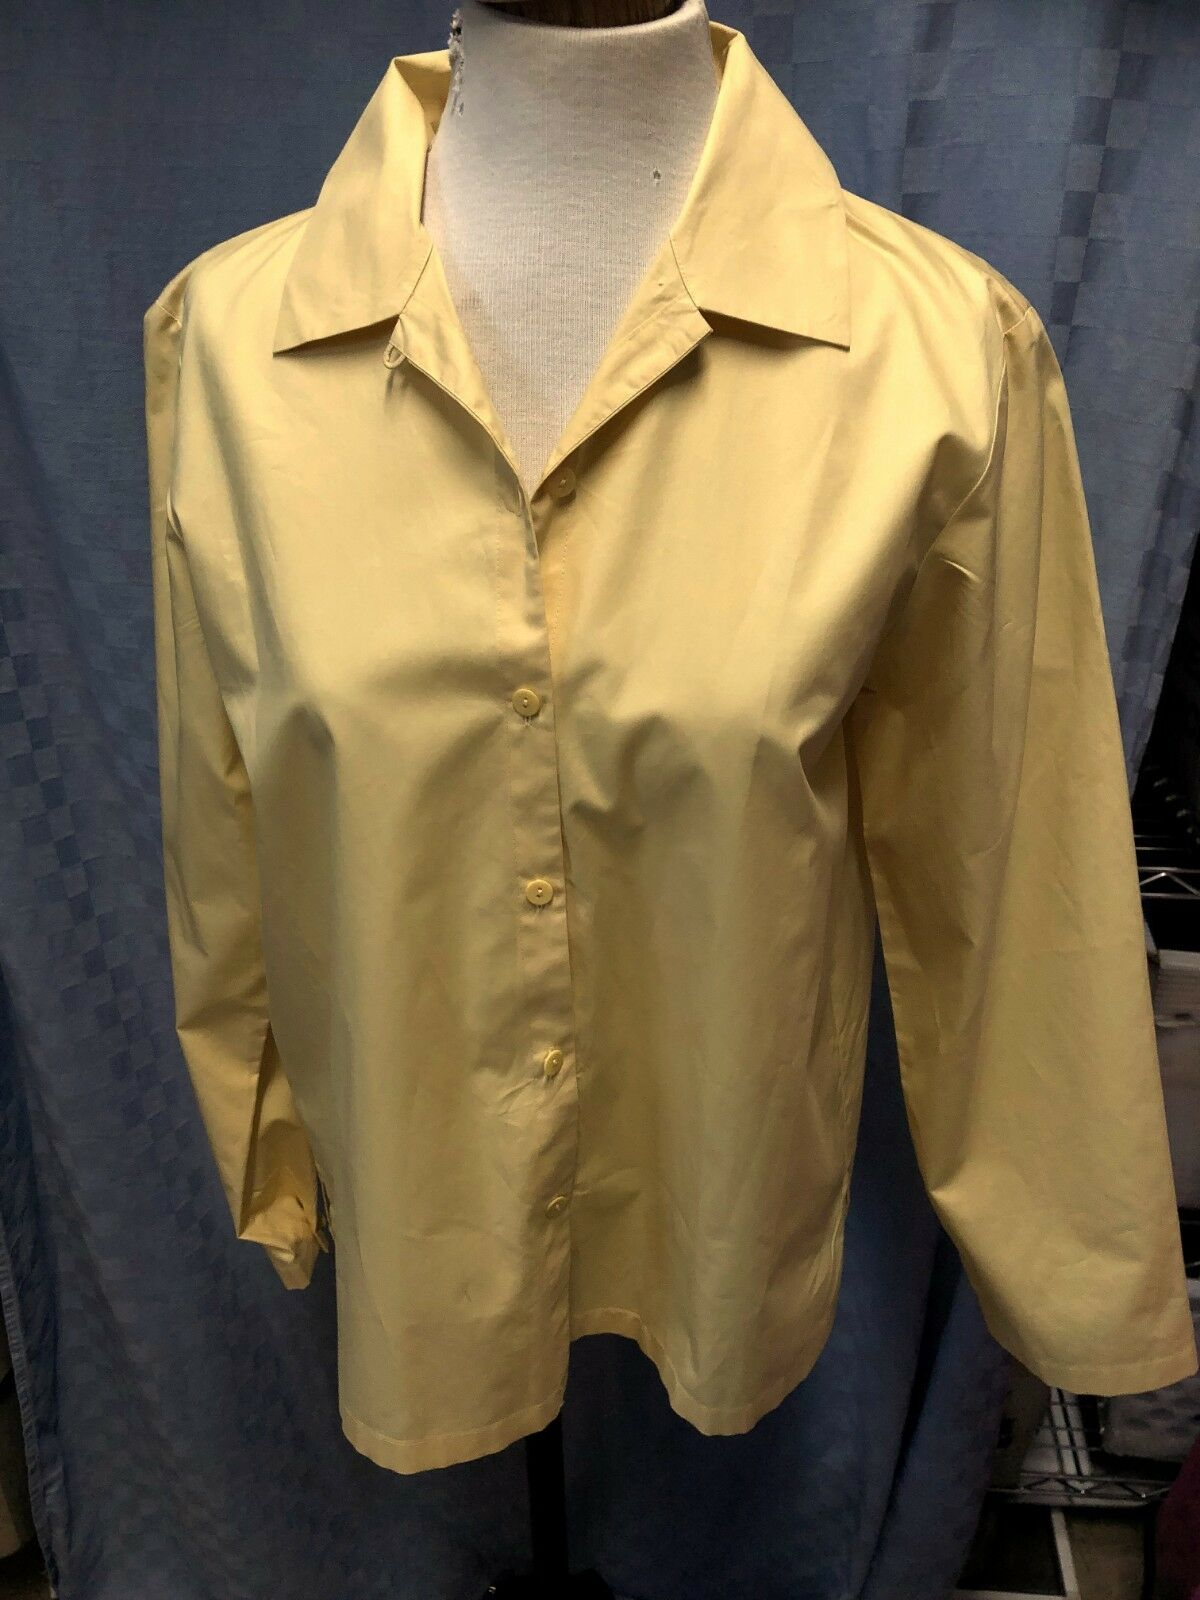 EILEEN FISHER BOXY COTTON Gold Blouse Tunic TOP Größe EXTRA SMALL XS  CHEST 40